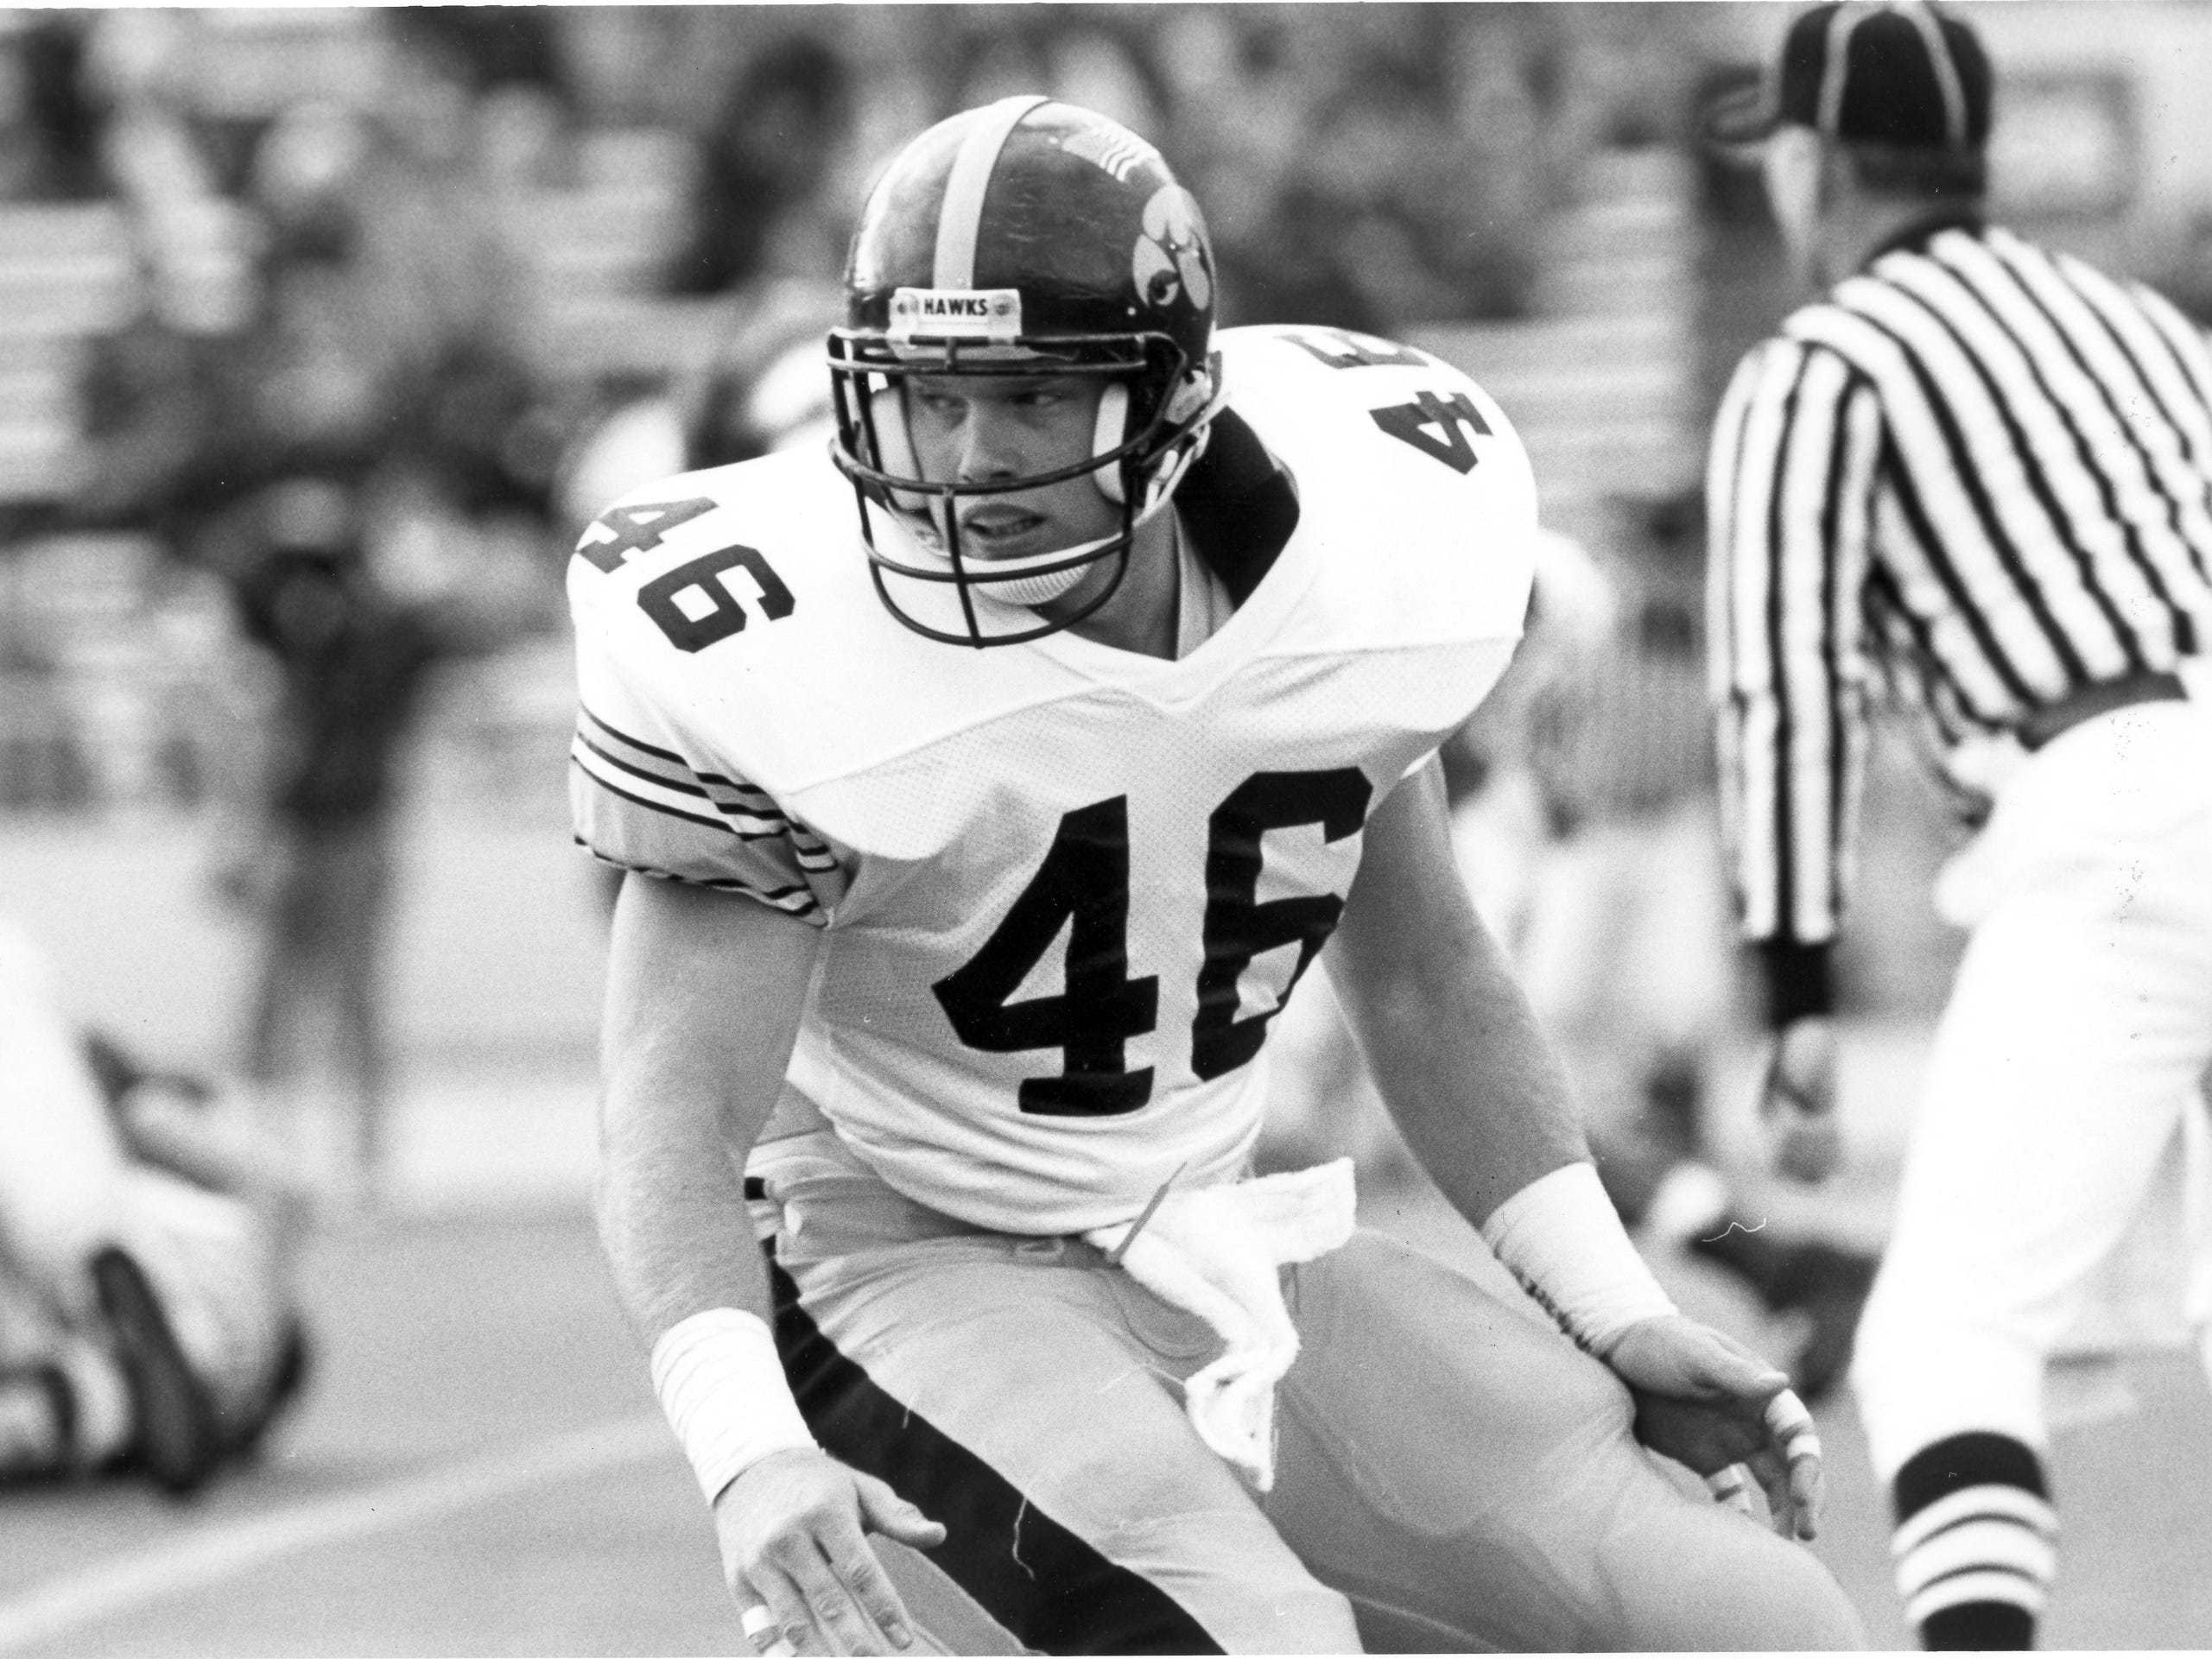 Matt Whitaker is pictured in this undated file photo provided by the University of Iowa.  Whitaker played tight end at The University of Iowa from 1988-1992.  On Wednesday, Nov. 7, 2018, Whitaker was named acting Attorney General after Attorney General Jeff Sessions resigned.